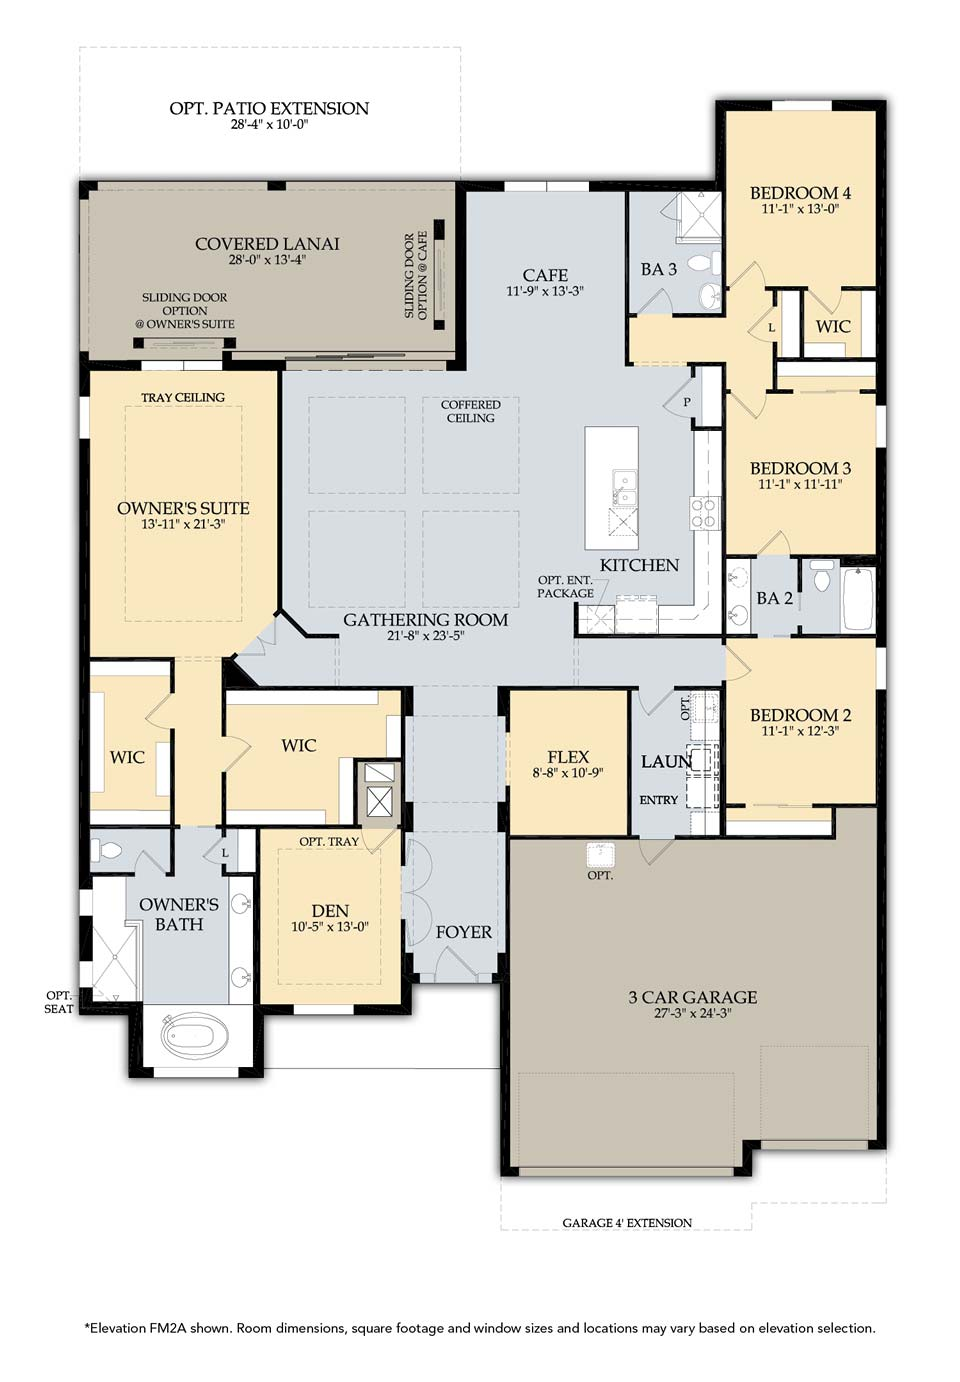 Pulte homes floor plans 2005 pulte homes floor plans Home floor